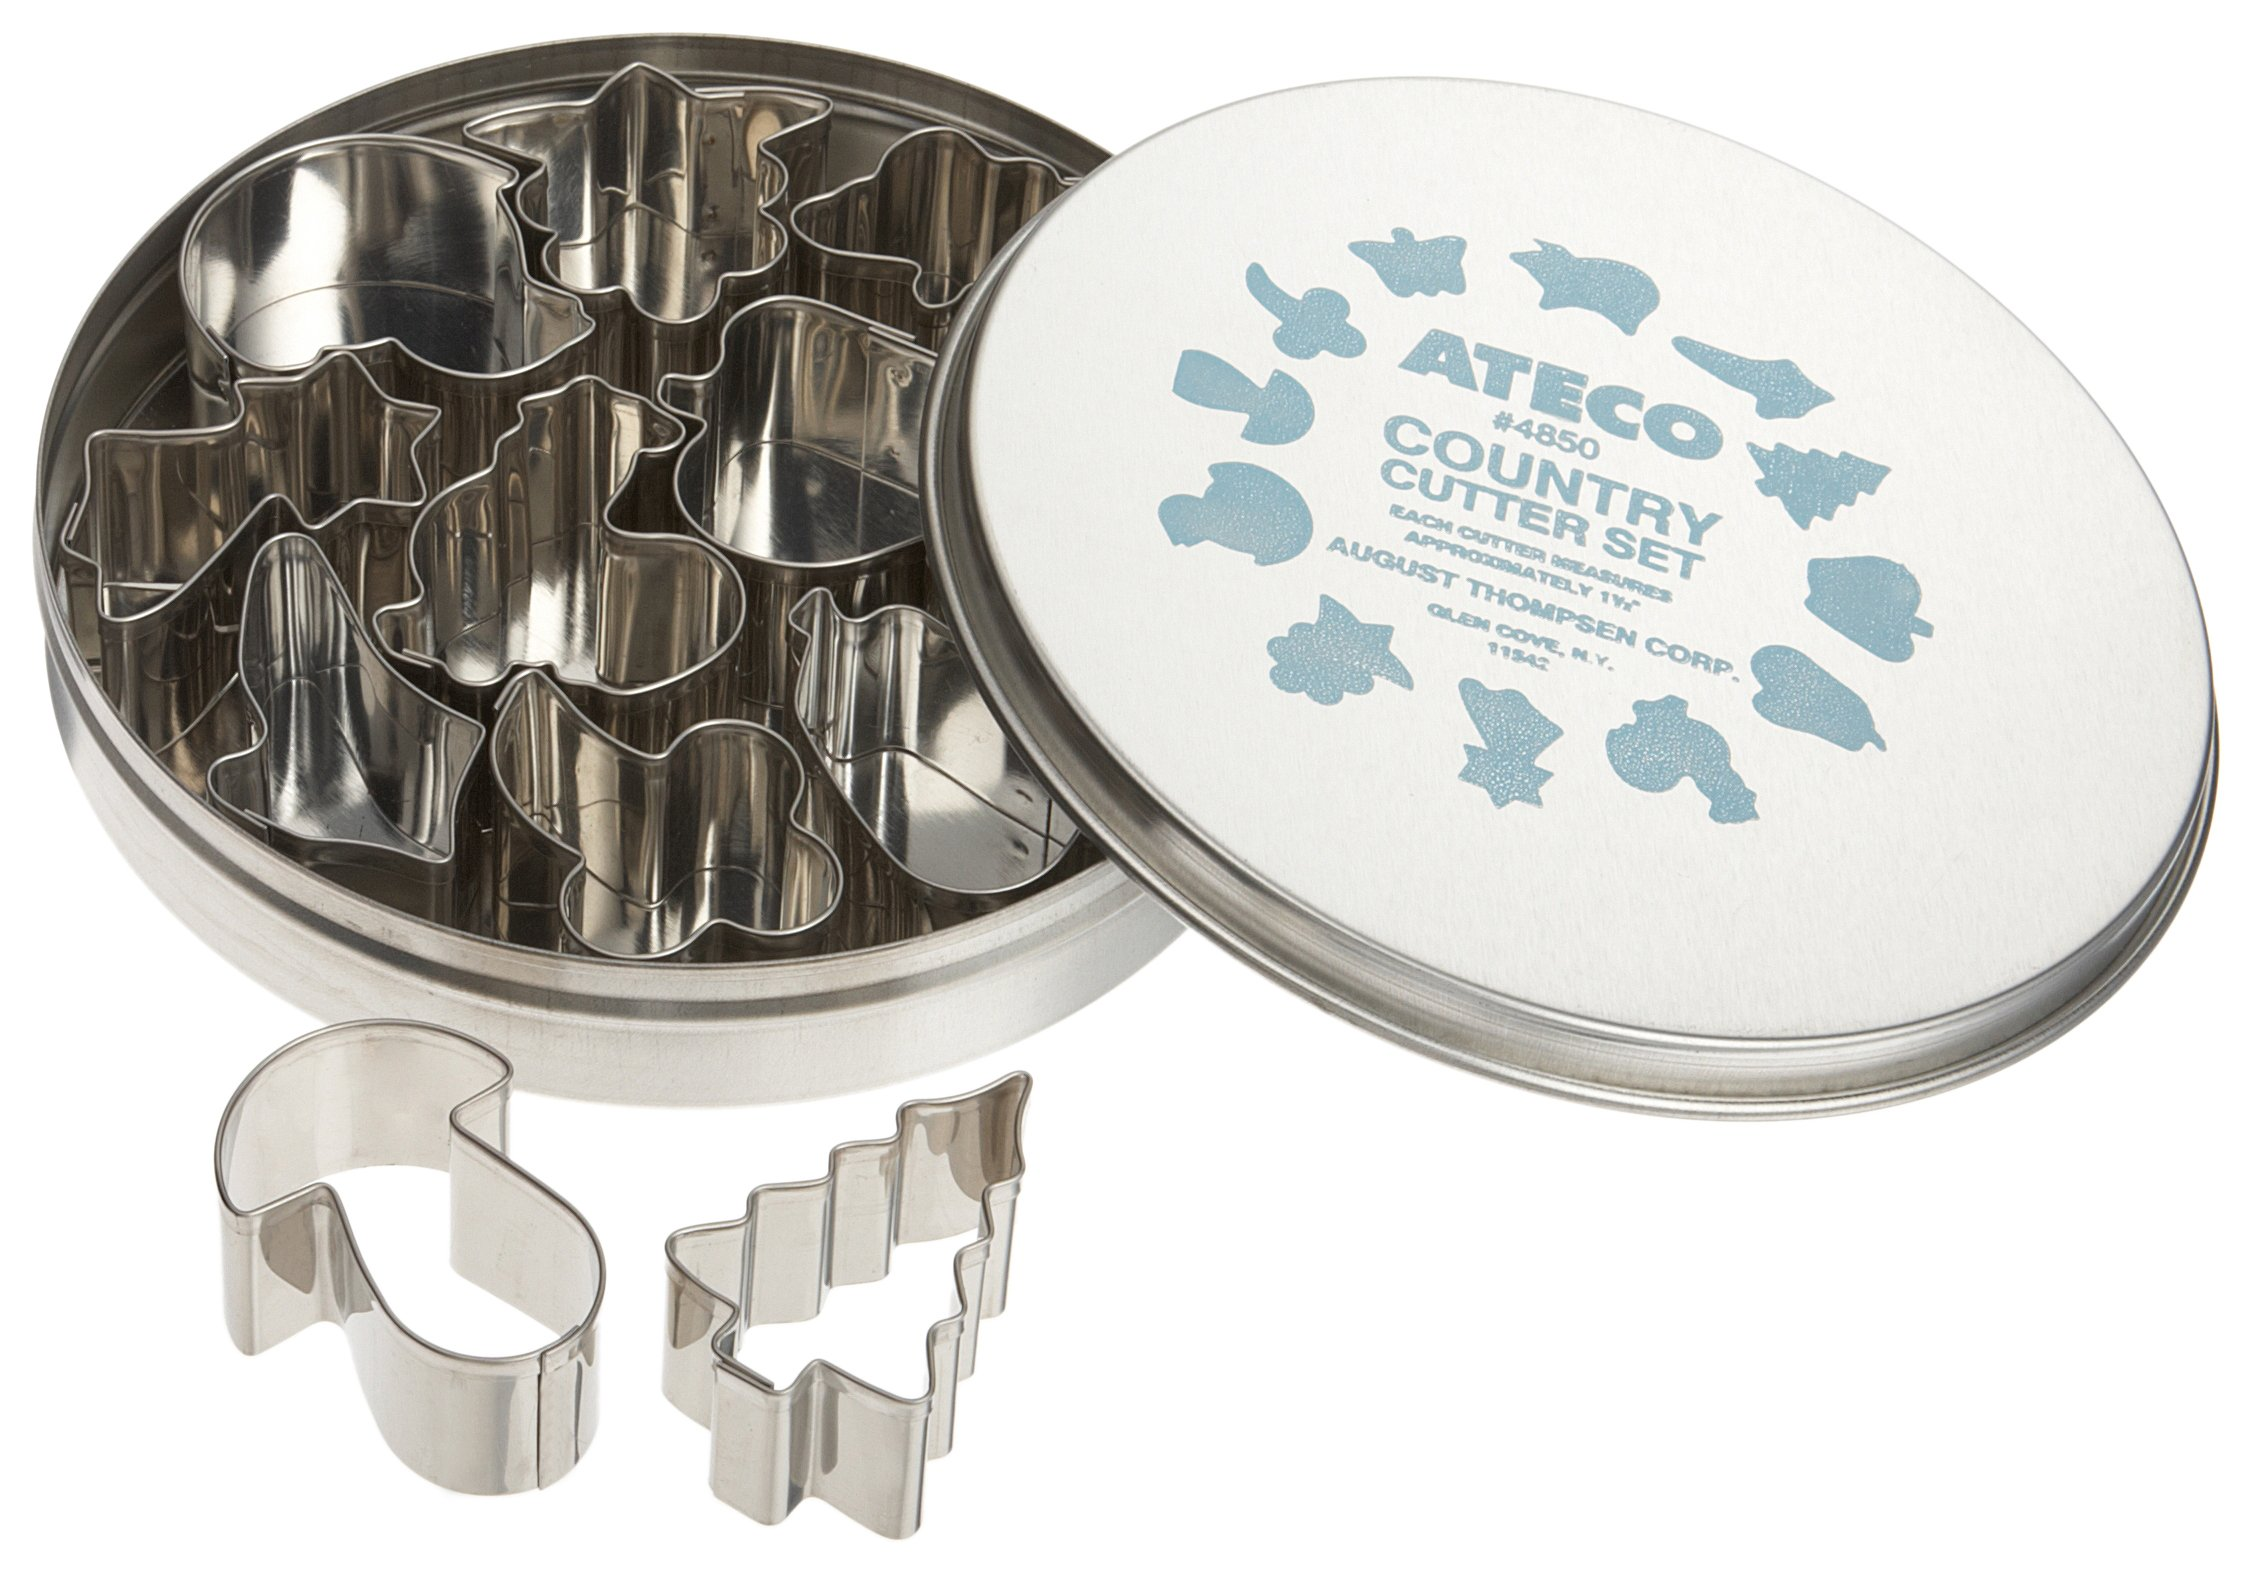 Ateco 4850 Plain Edge Country Life Cutters in Assorted Shapes, Stainless Steel, 12 Pc Set